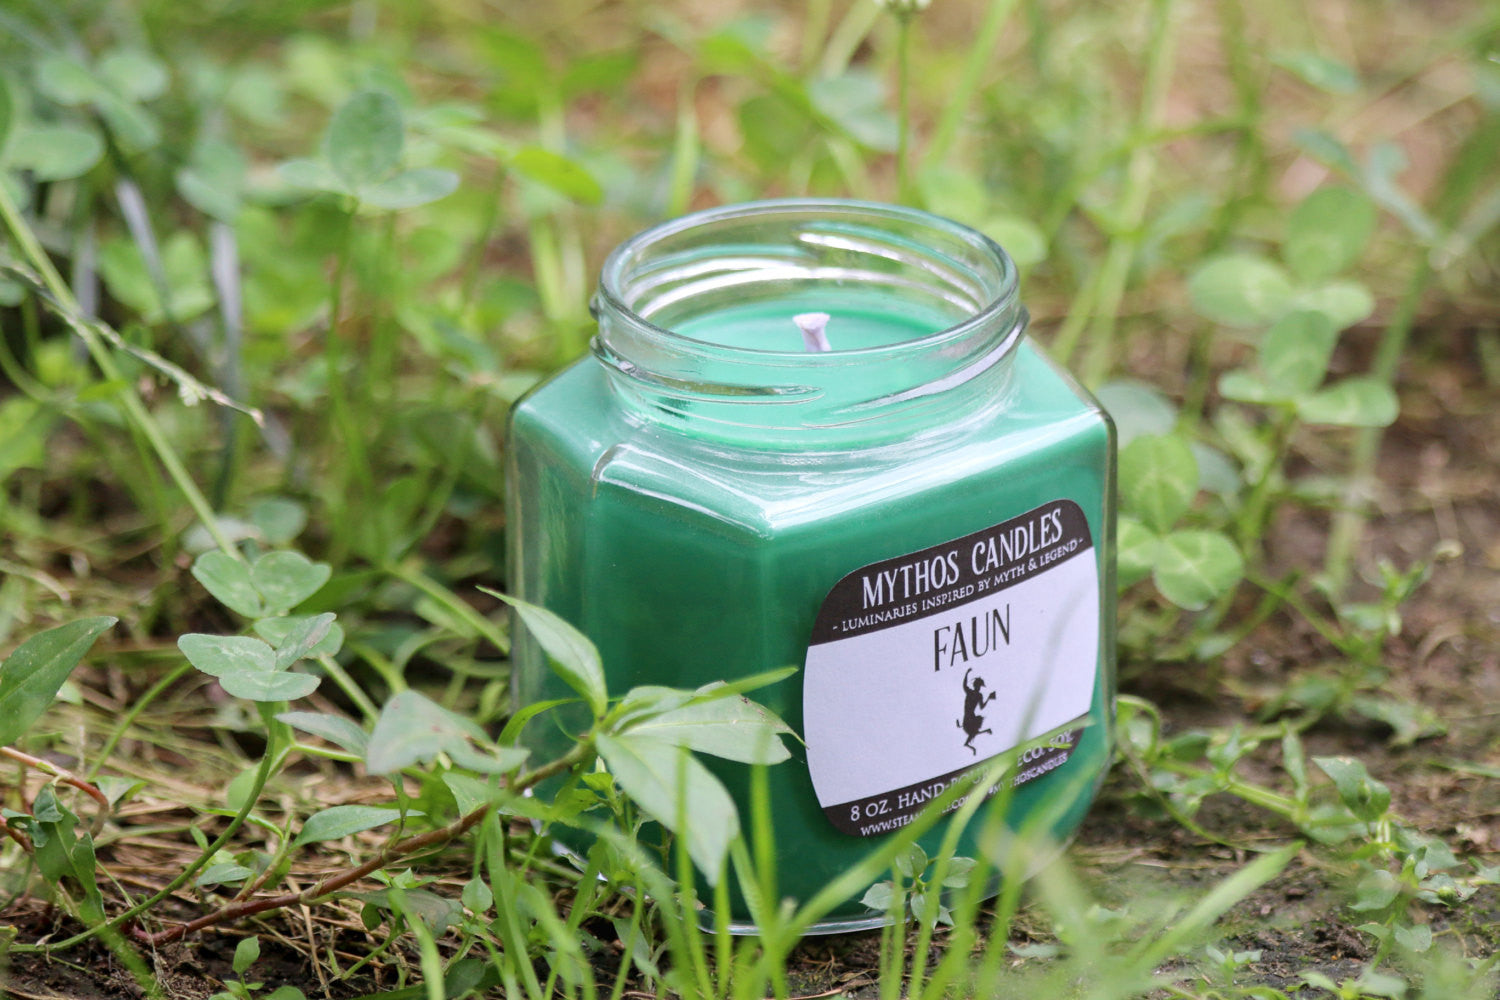 Mythos Candles - Faun | 8oz. Strong Scented Soy Candle | Meadow & Rosemary - SteamWolf Symphony